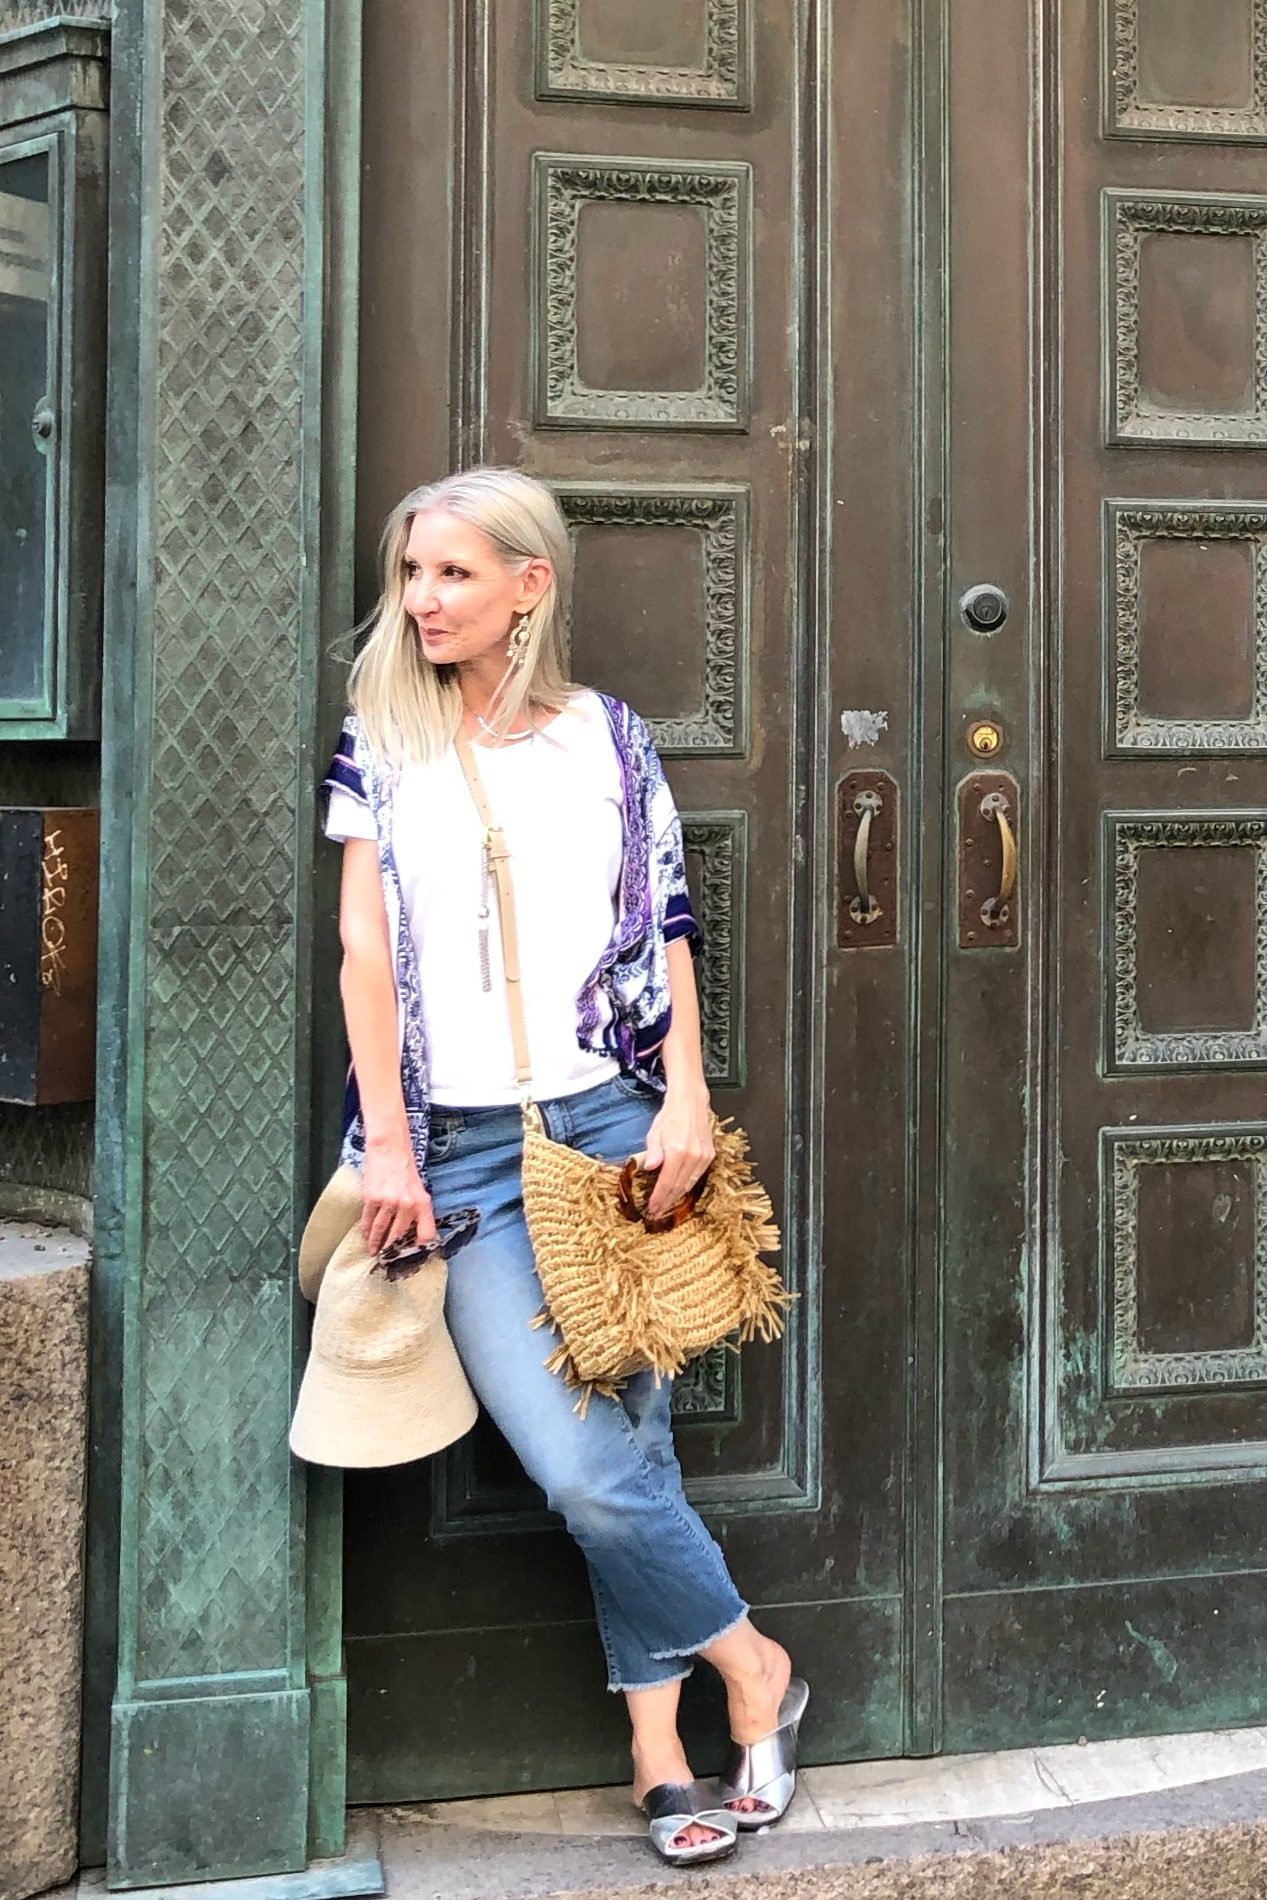 Chico's boho chic outfit